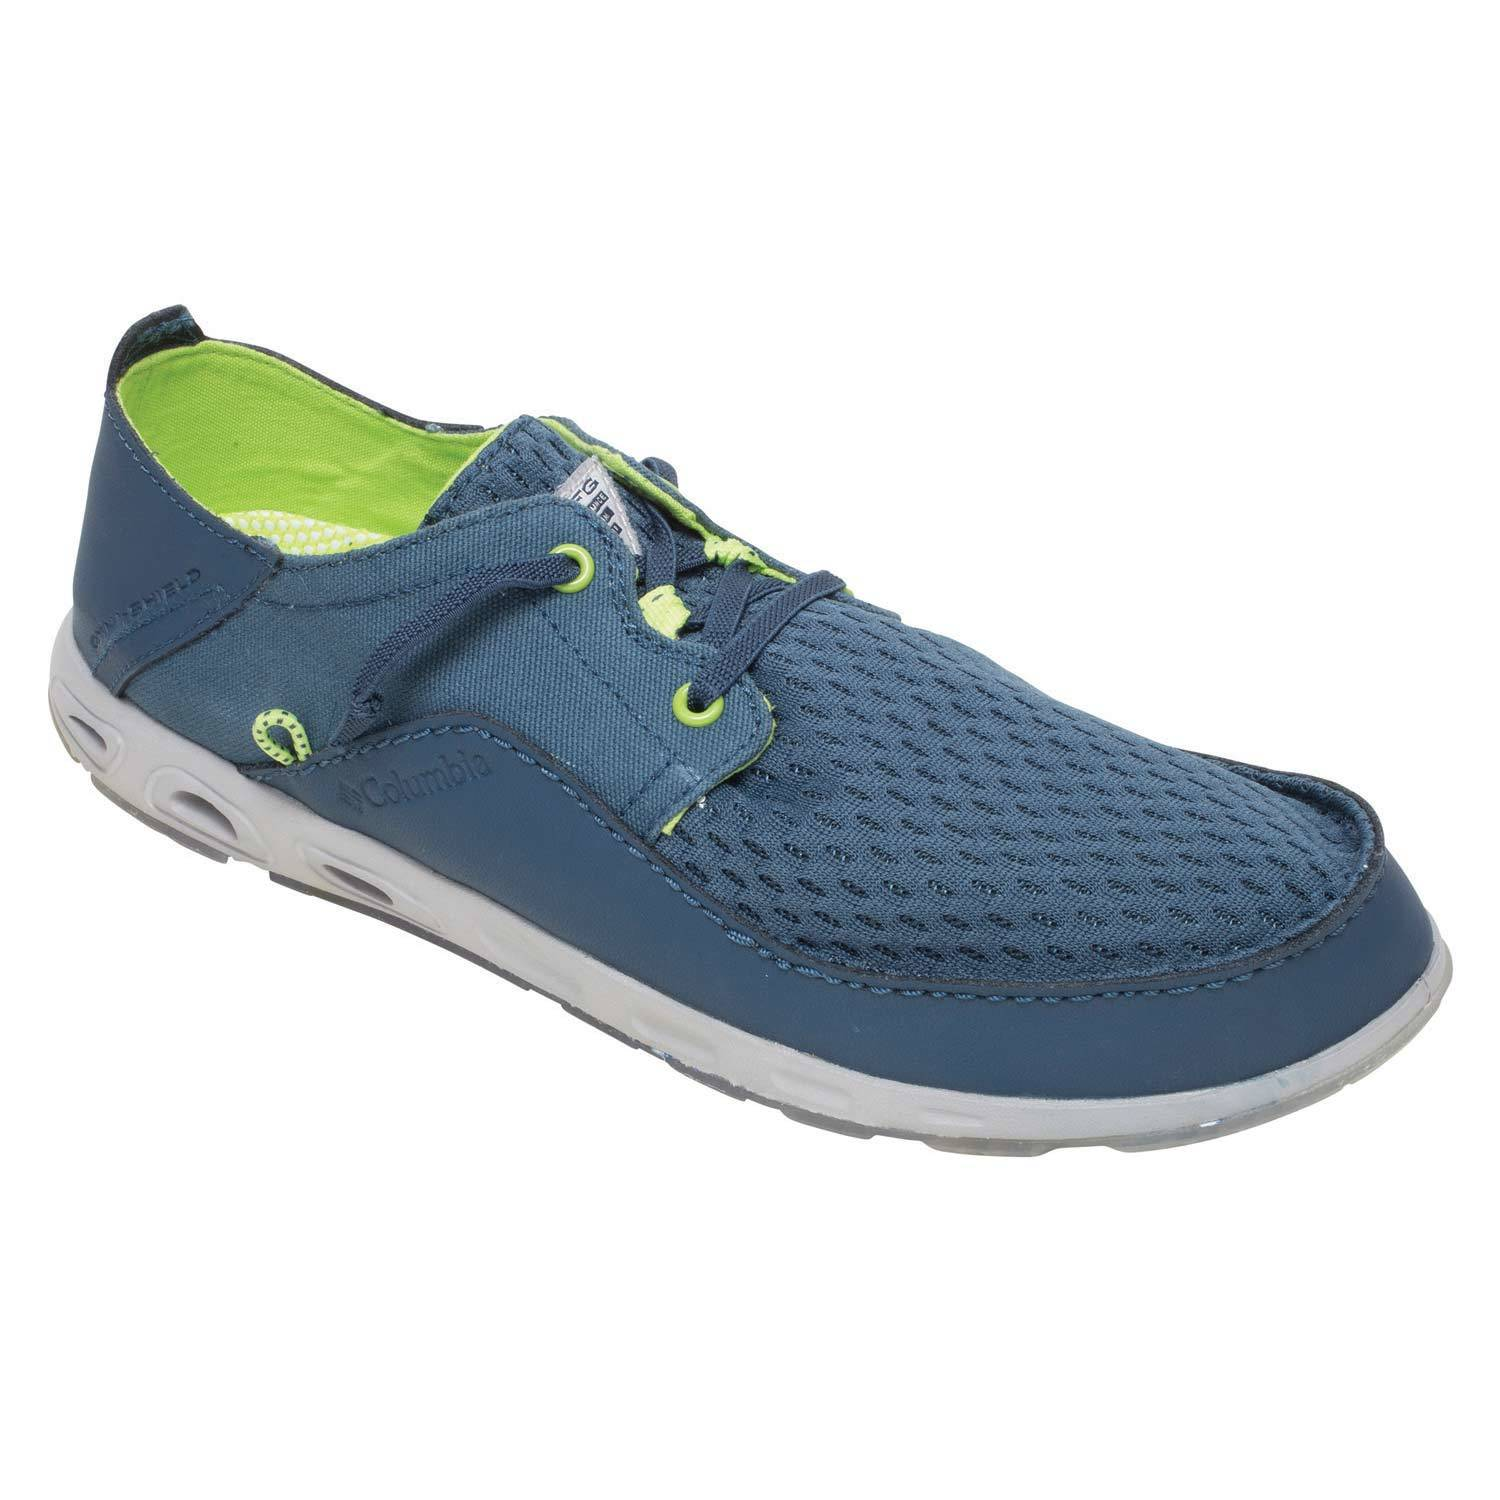 75ab92476d3 COLUMBIA Men's Bahama™ Vent Relax Marlin PFG Boat Shoes | West Marine